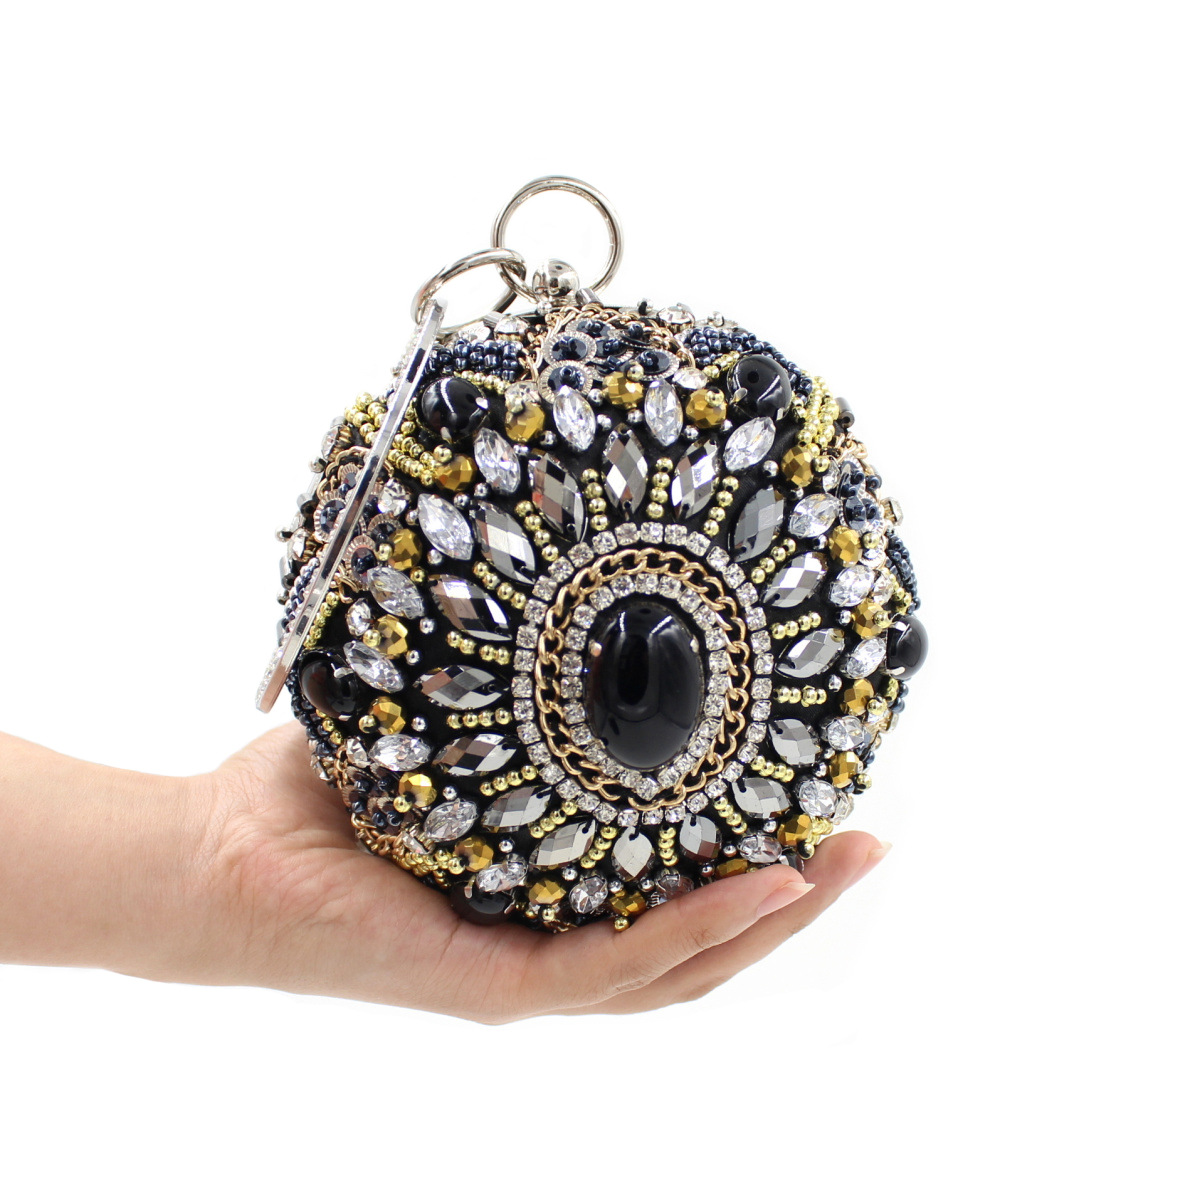 2017 New Women Circular Clutches Evening Bags Diamonds Luxury Earth Beaded Nightclub Ladies Wedding Day Clutches Ring Handle<br>